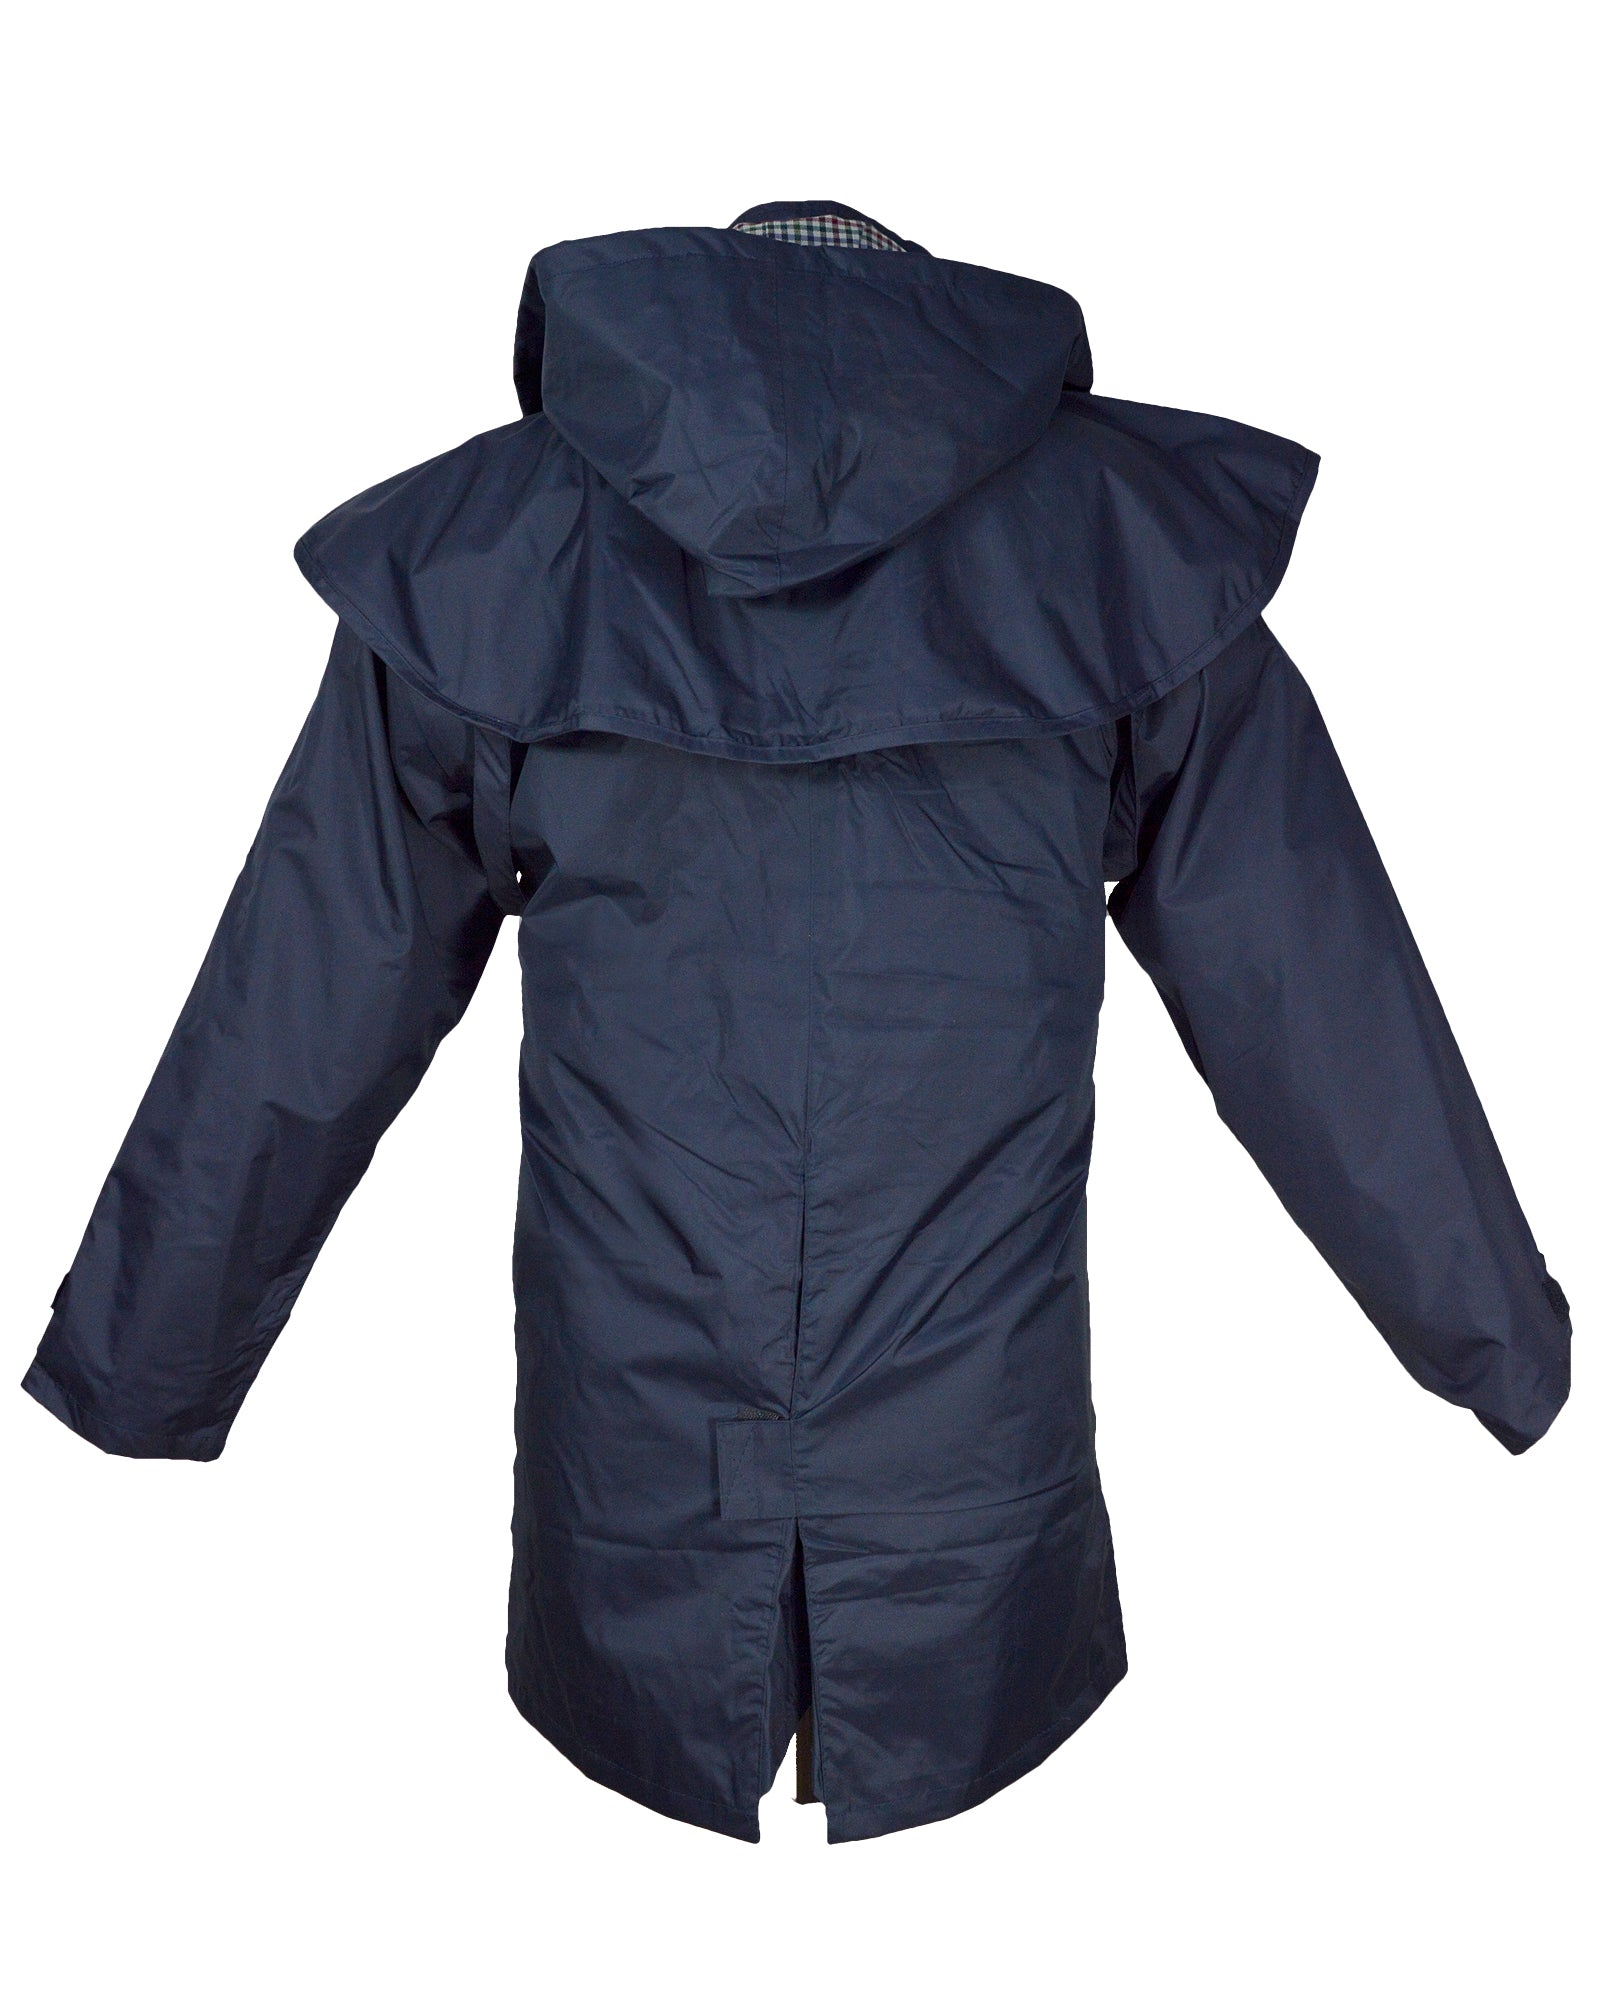 Windsor Womens Waterproof Short Coat - Navy